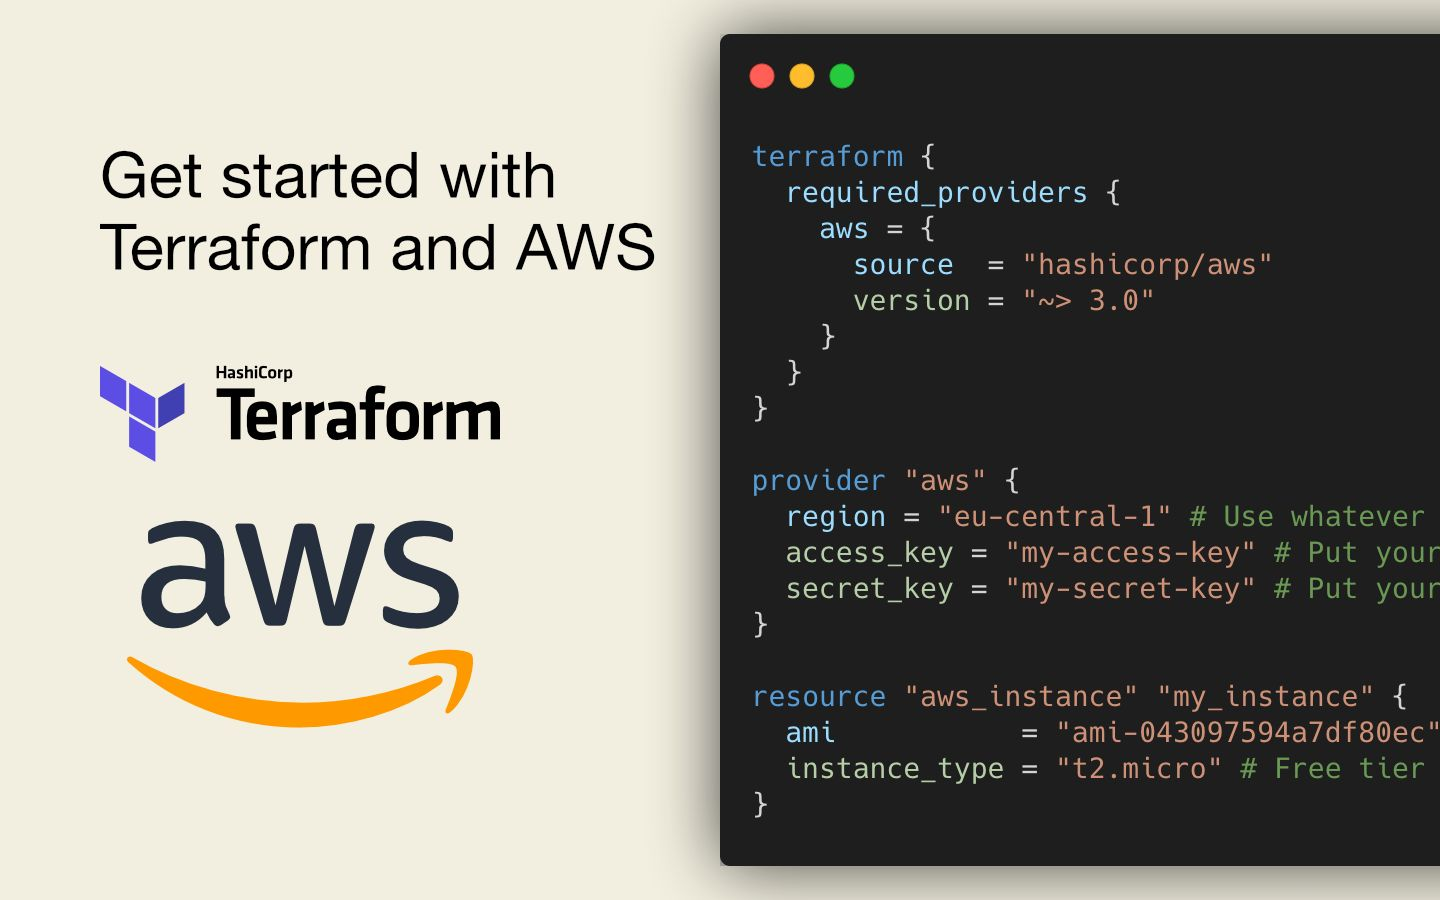 /an-intro-to-terraform-and-aws-y01v34v2 feature image